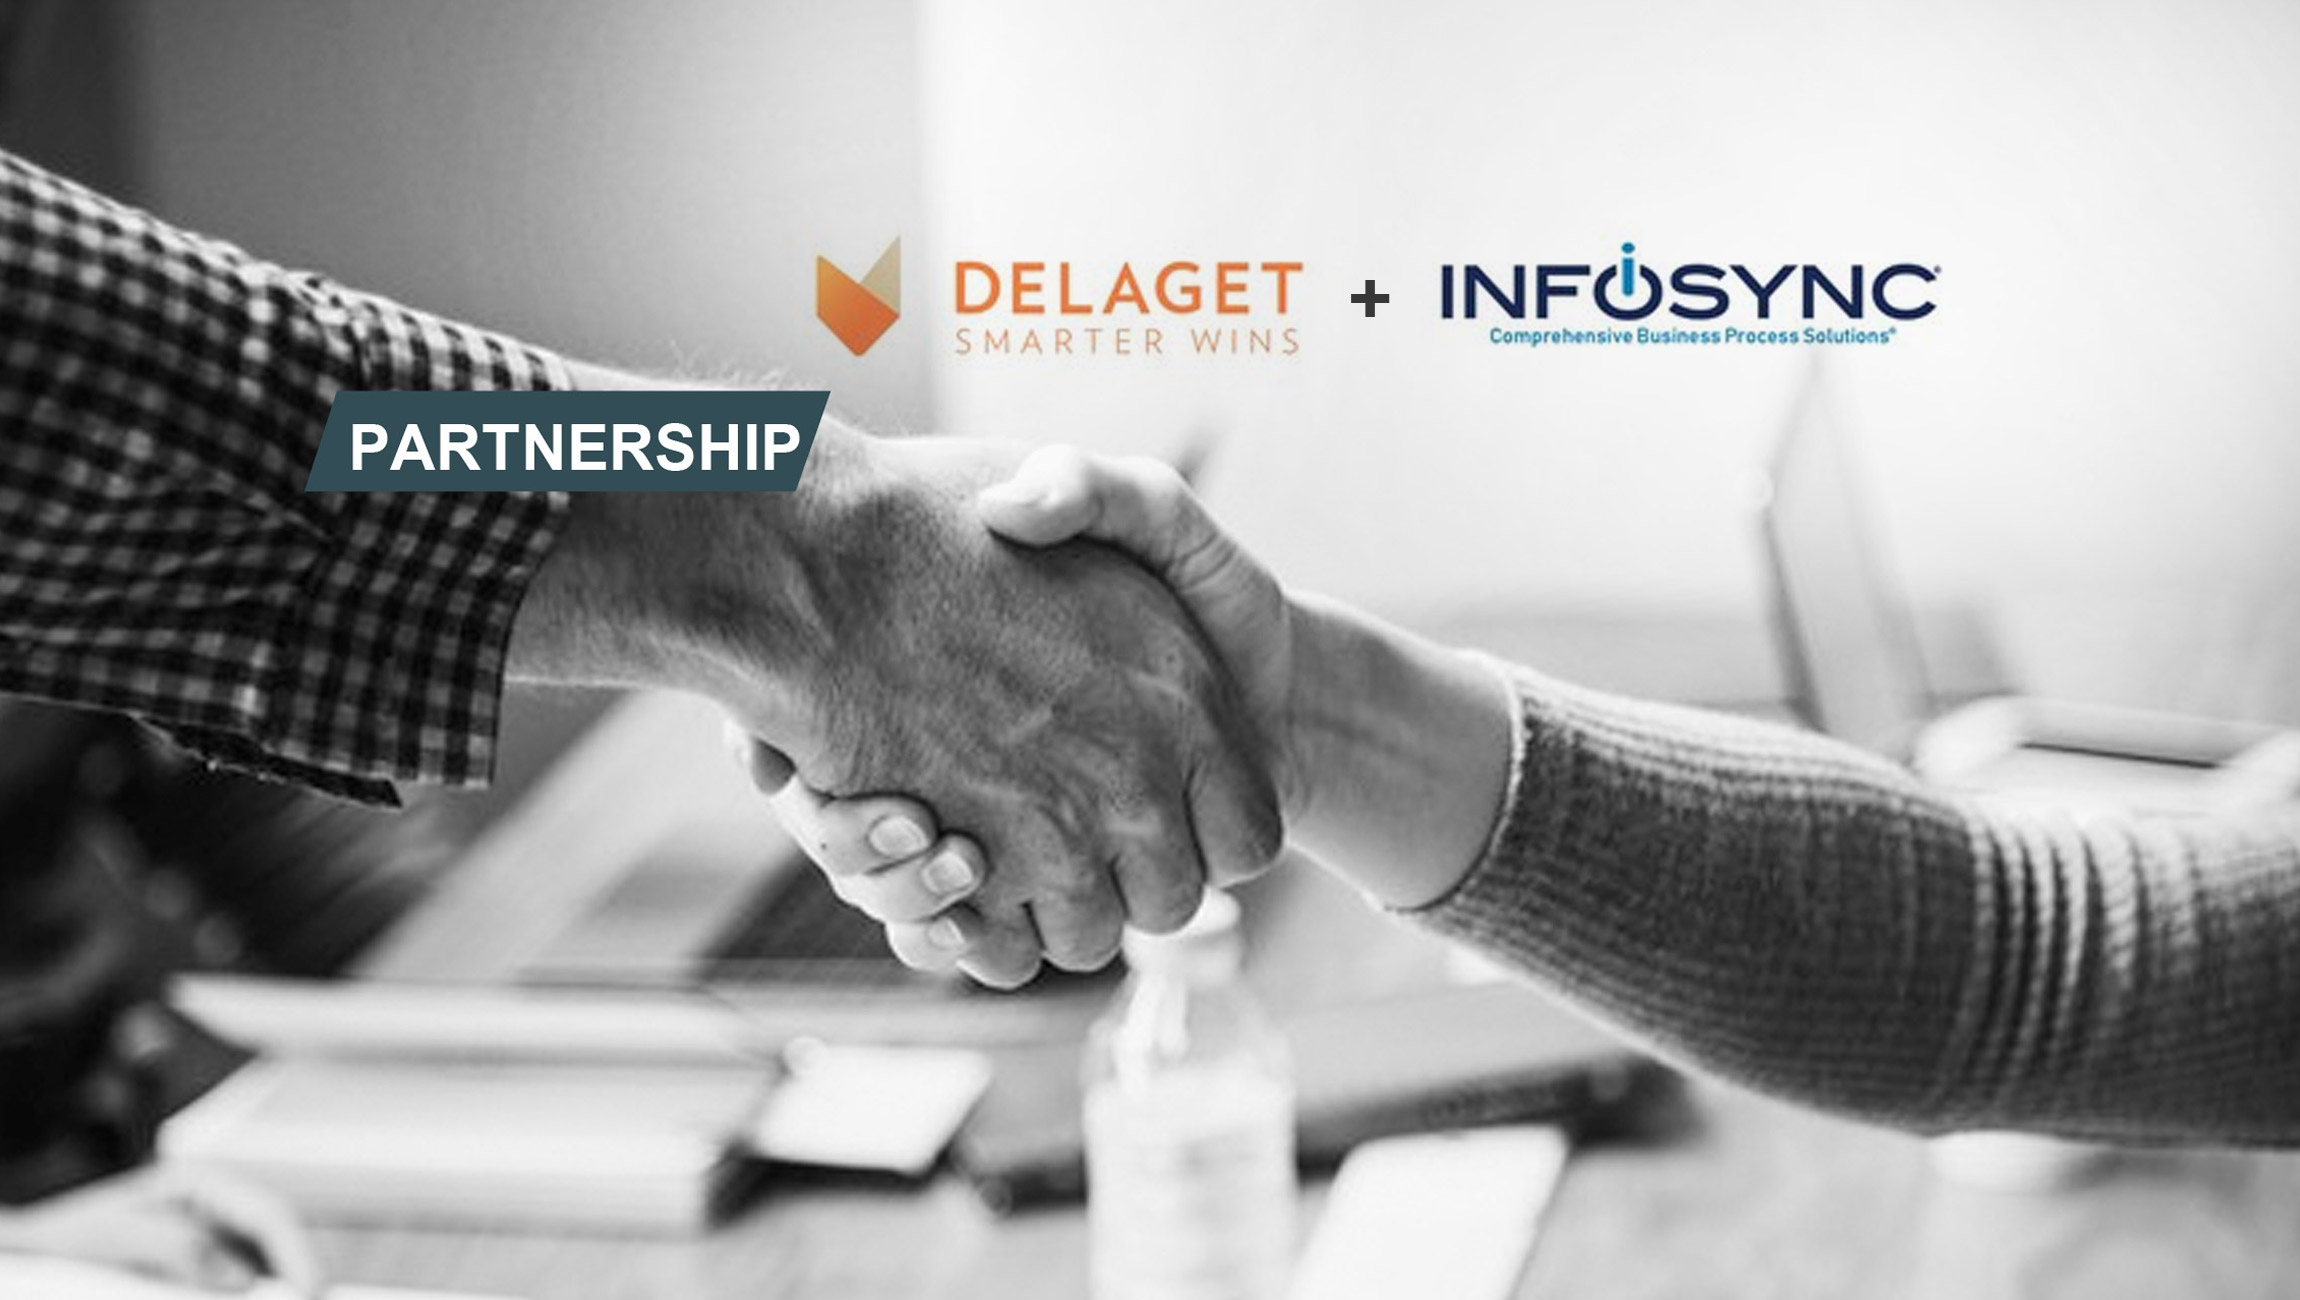 Delaget and InfoSync Announce Partnership